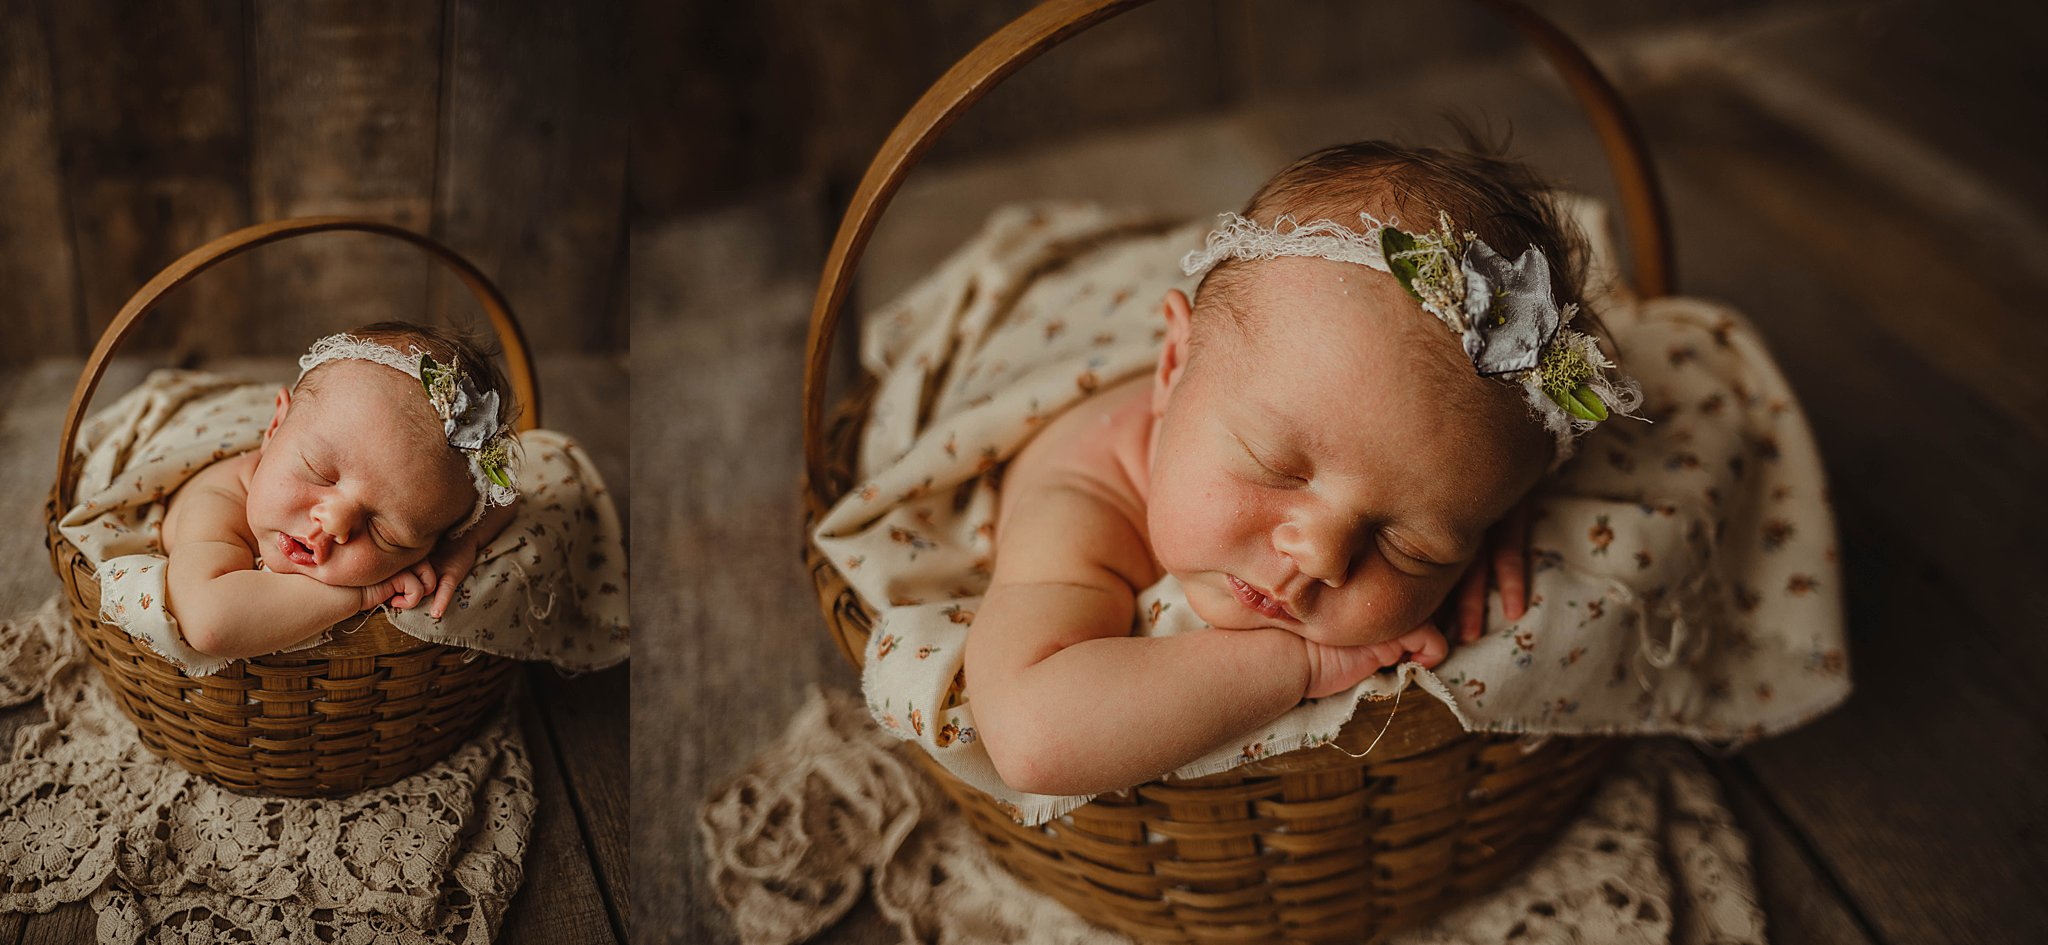 osage-beach-missouri-newborn-photo-studio-flowers-03-11-2019-5.jpg